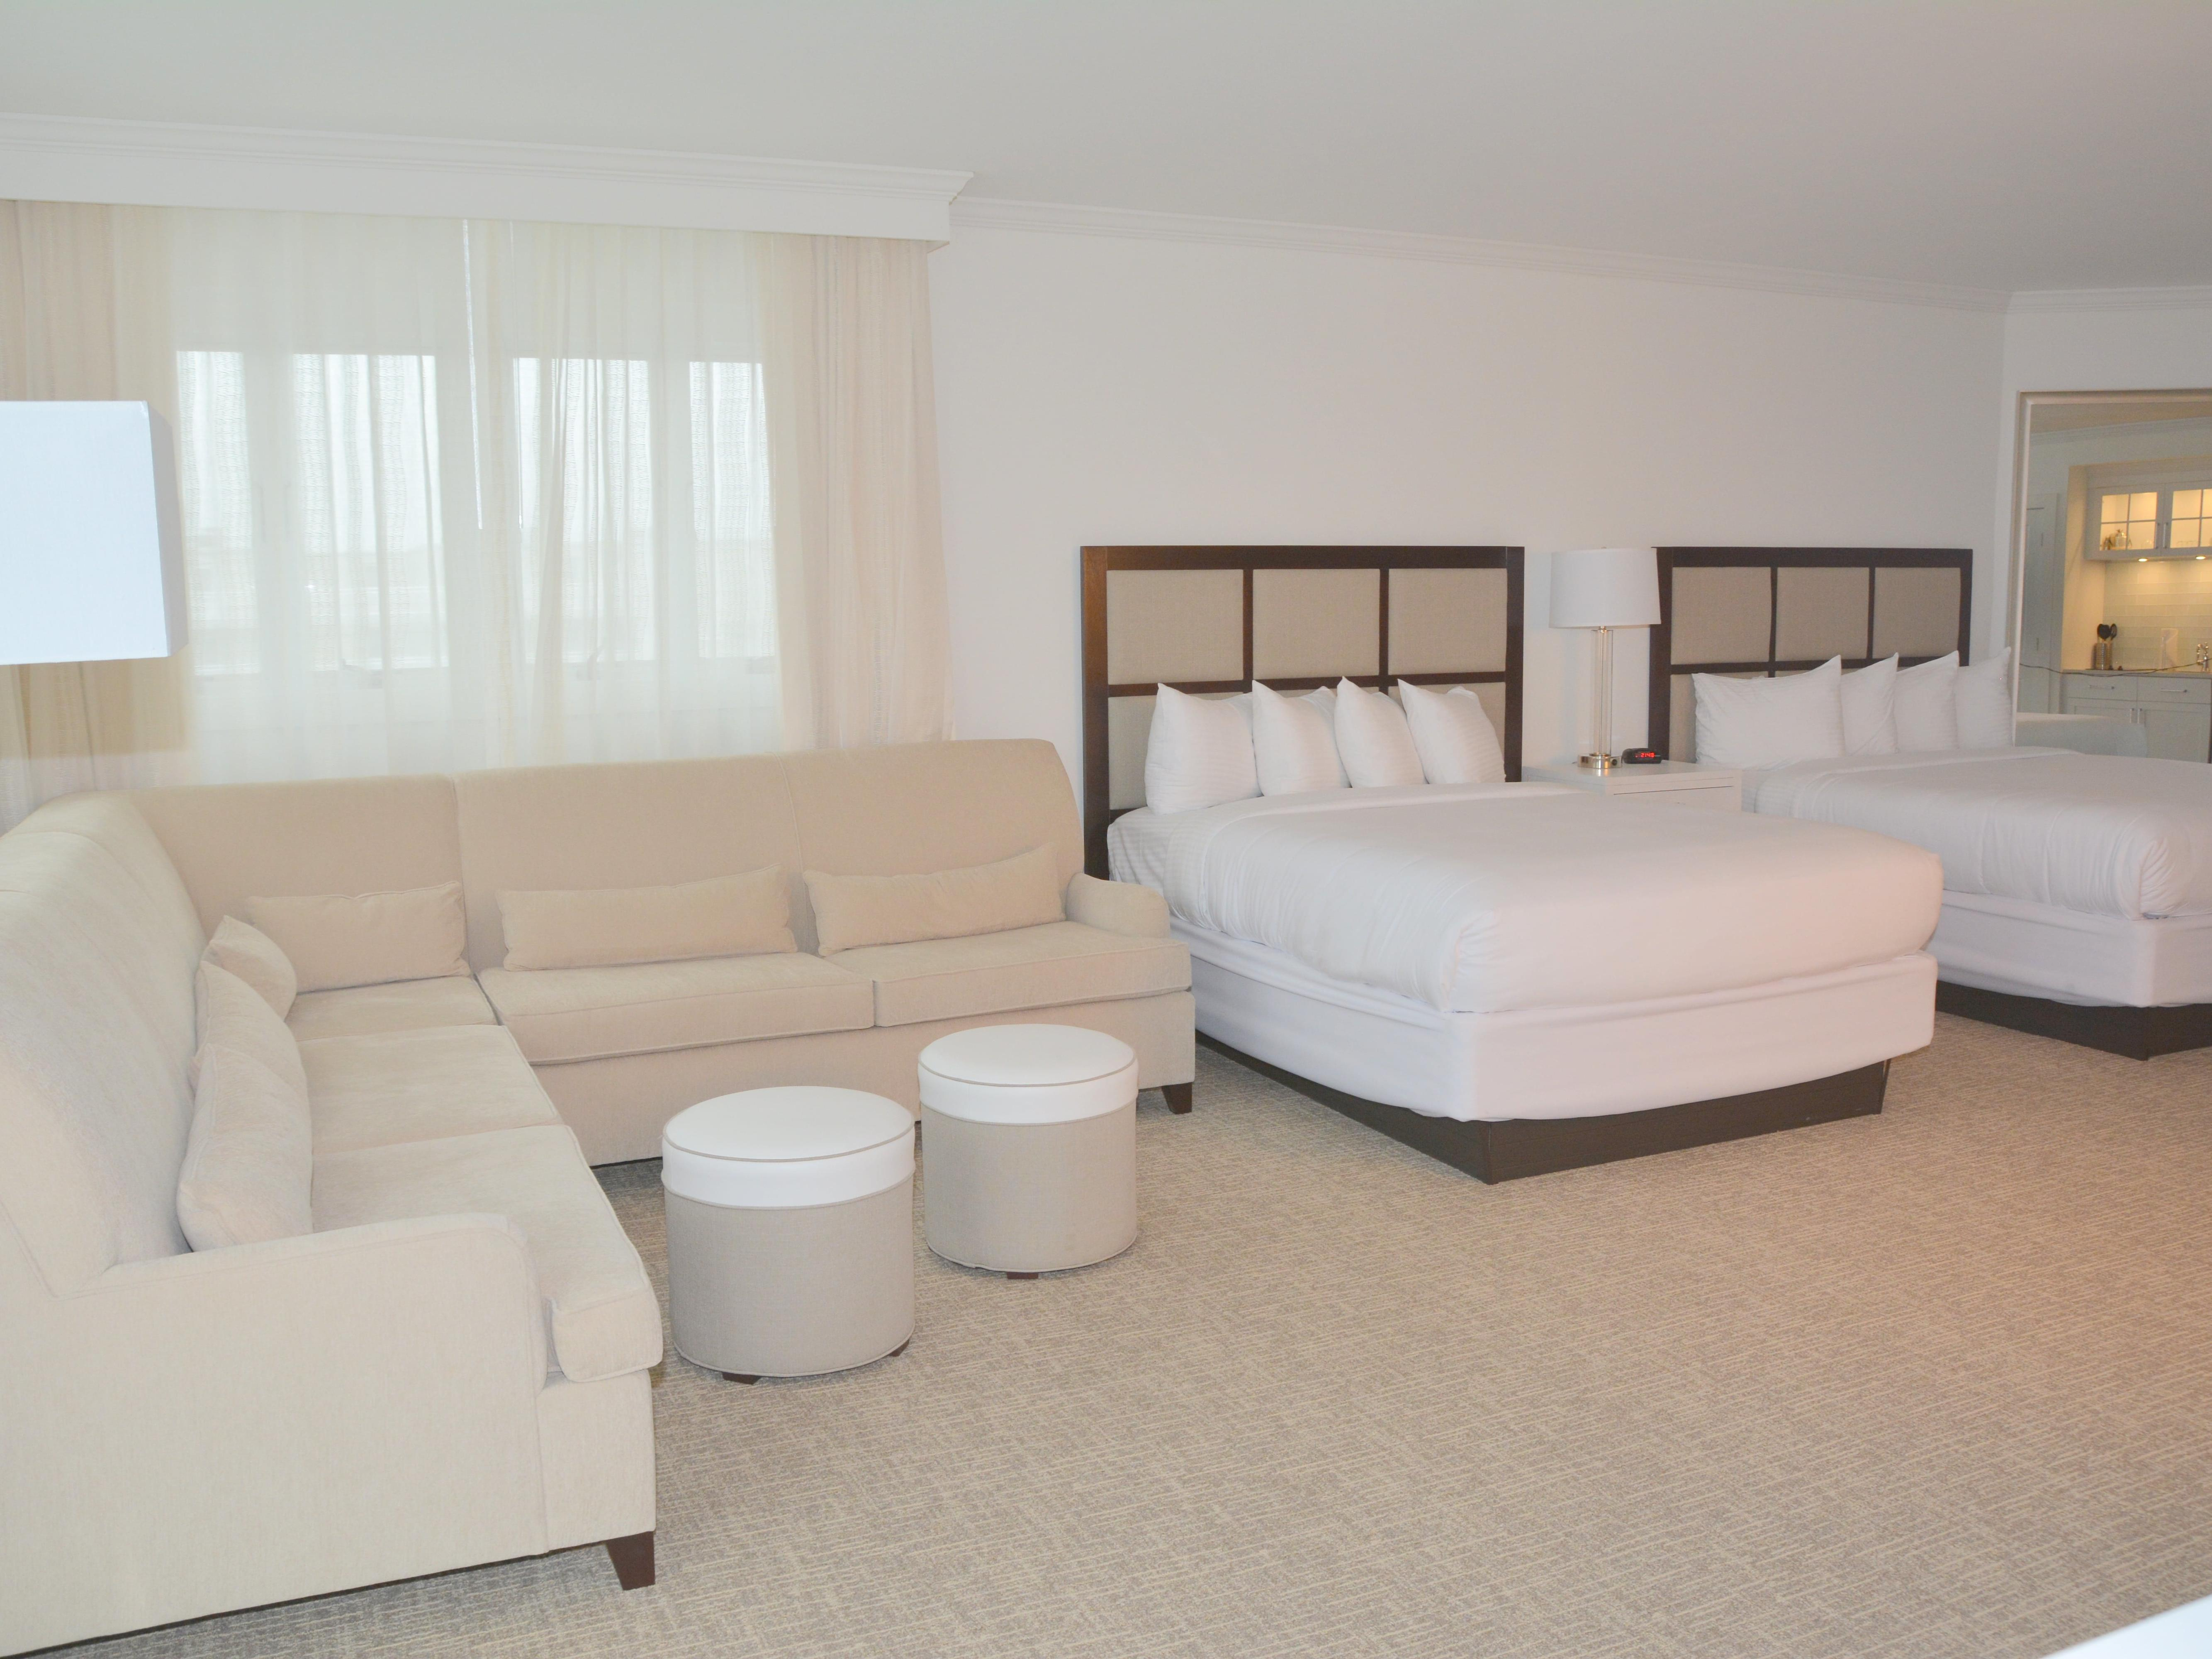 room with two beds and sectional sofa